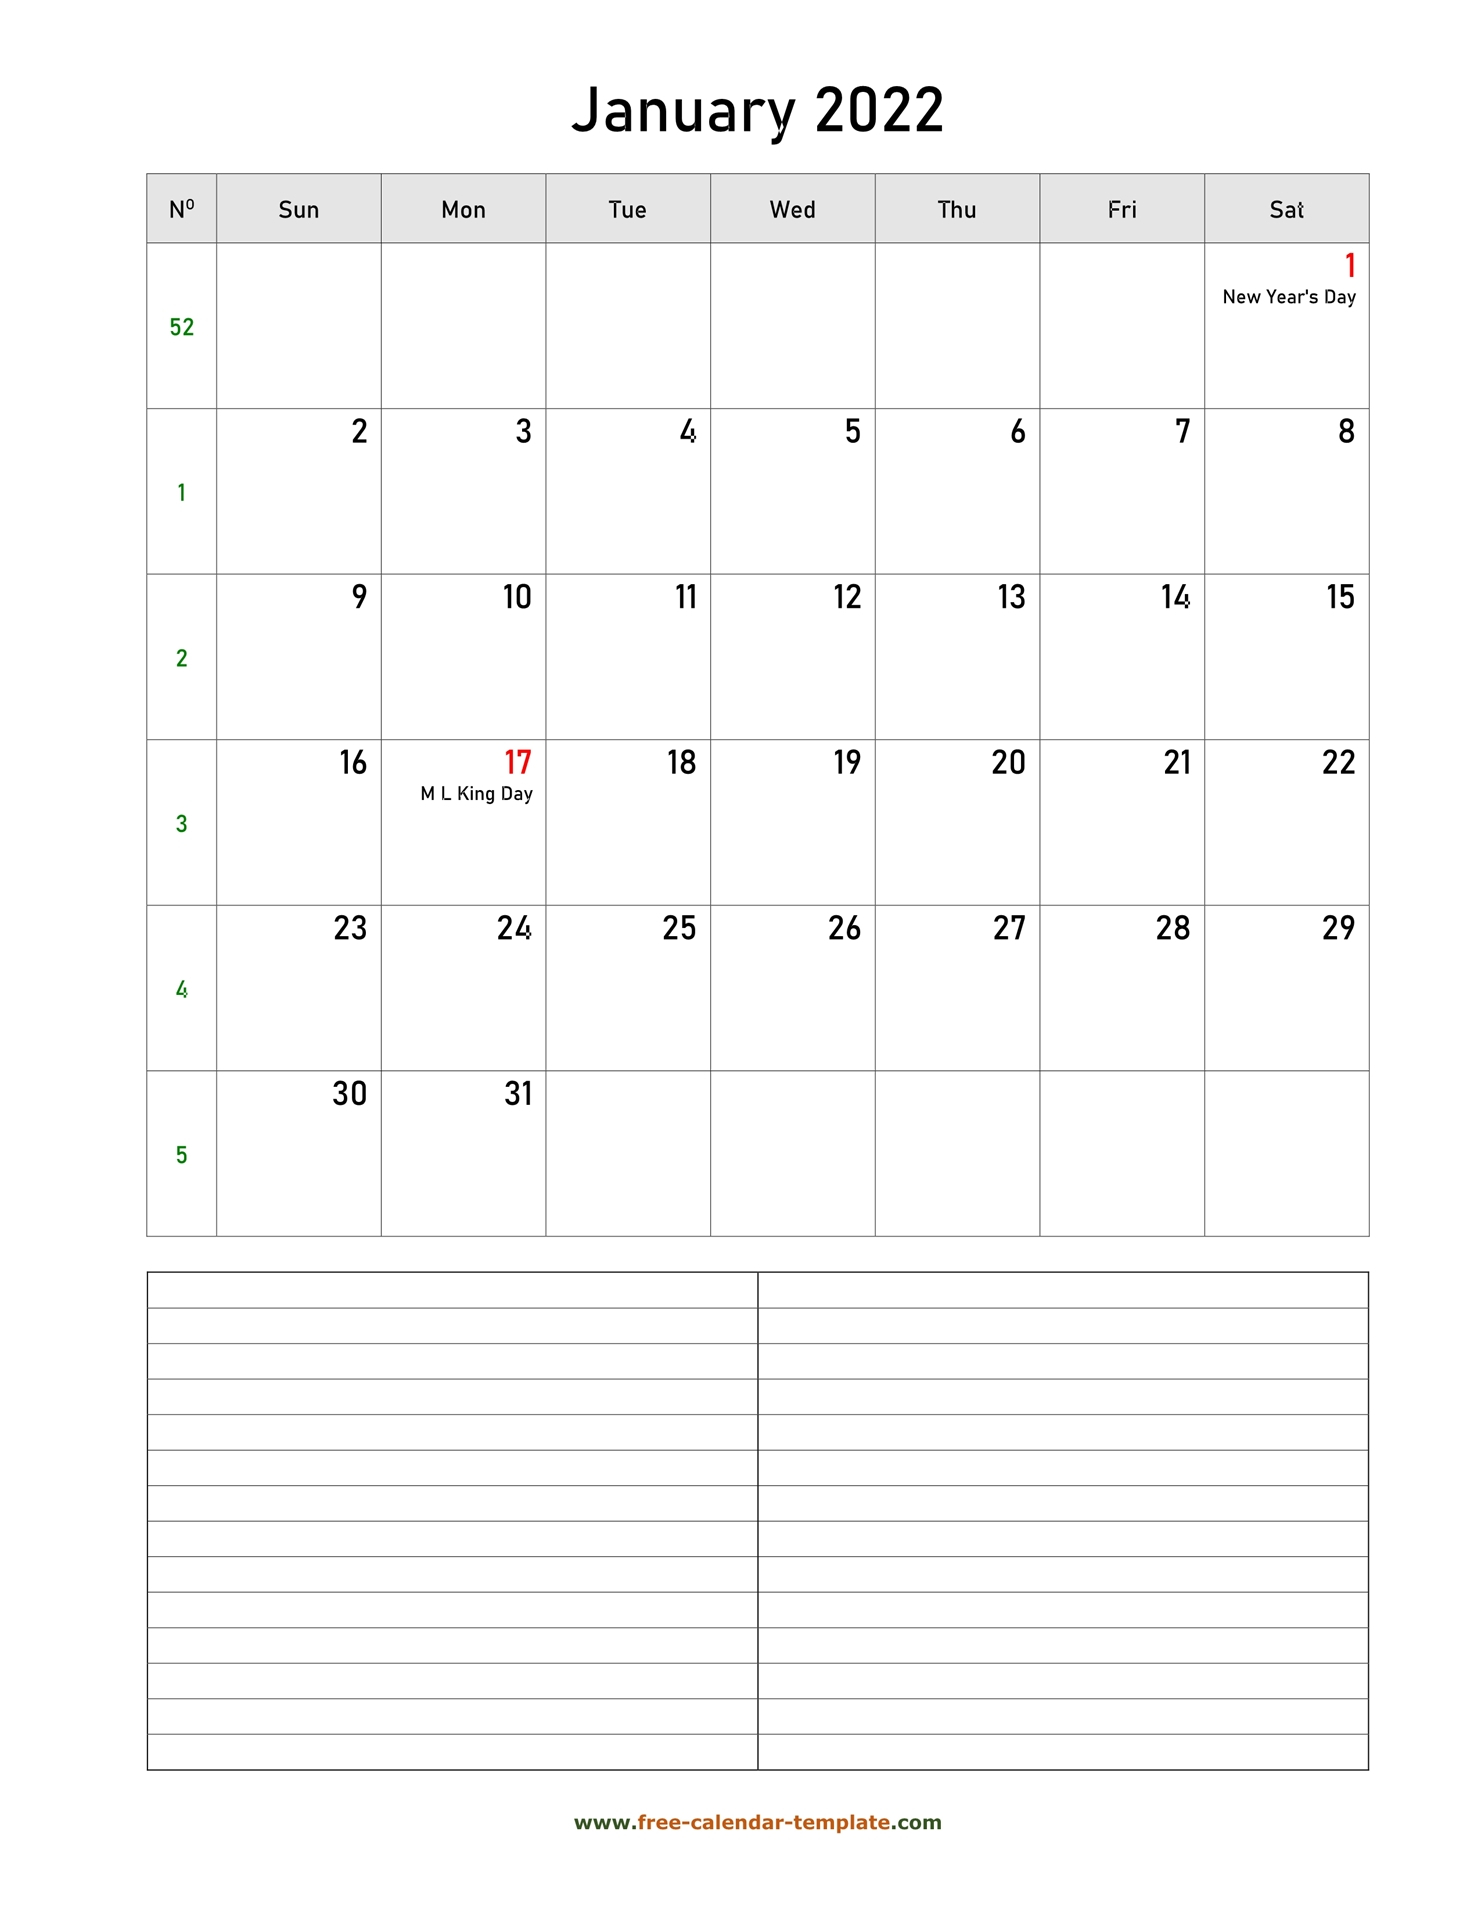 Printable January 2022 Calendar With Space For Regarding Images Of January 2022 Calendar